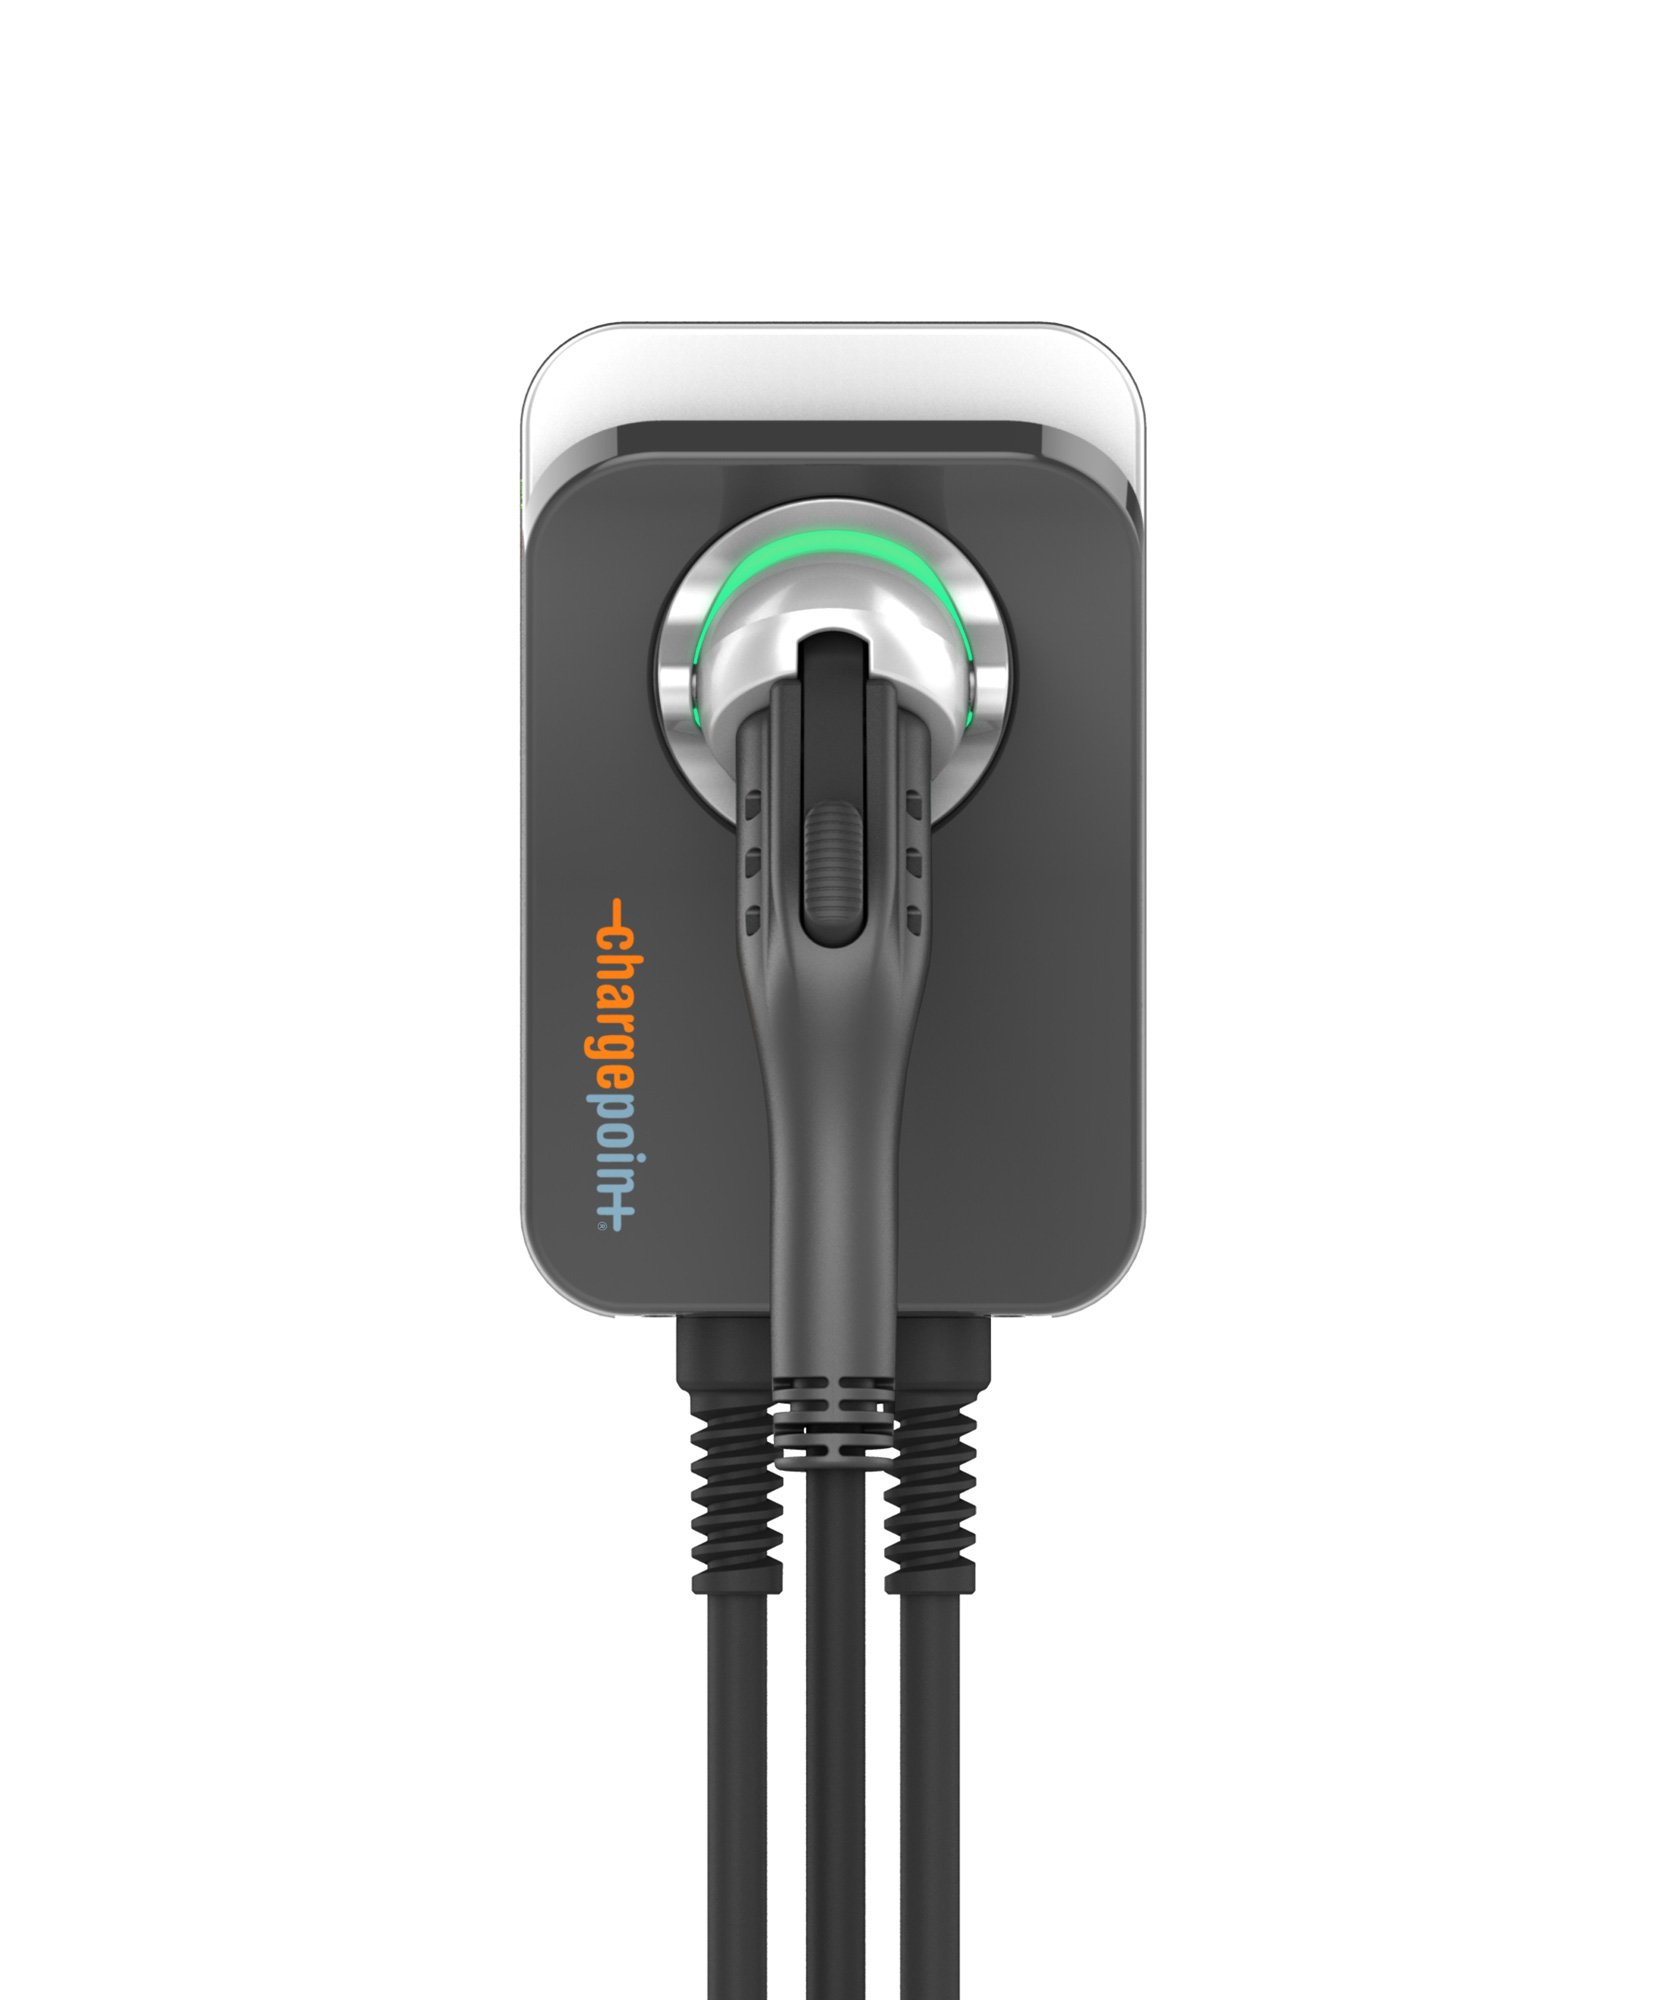 ChargePoint Home Electric Vehicle Charger: 16 Amp, plug-in station